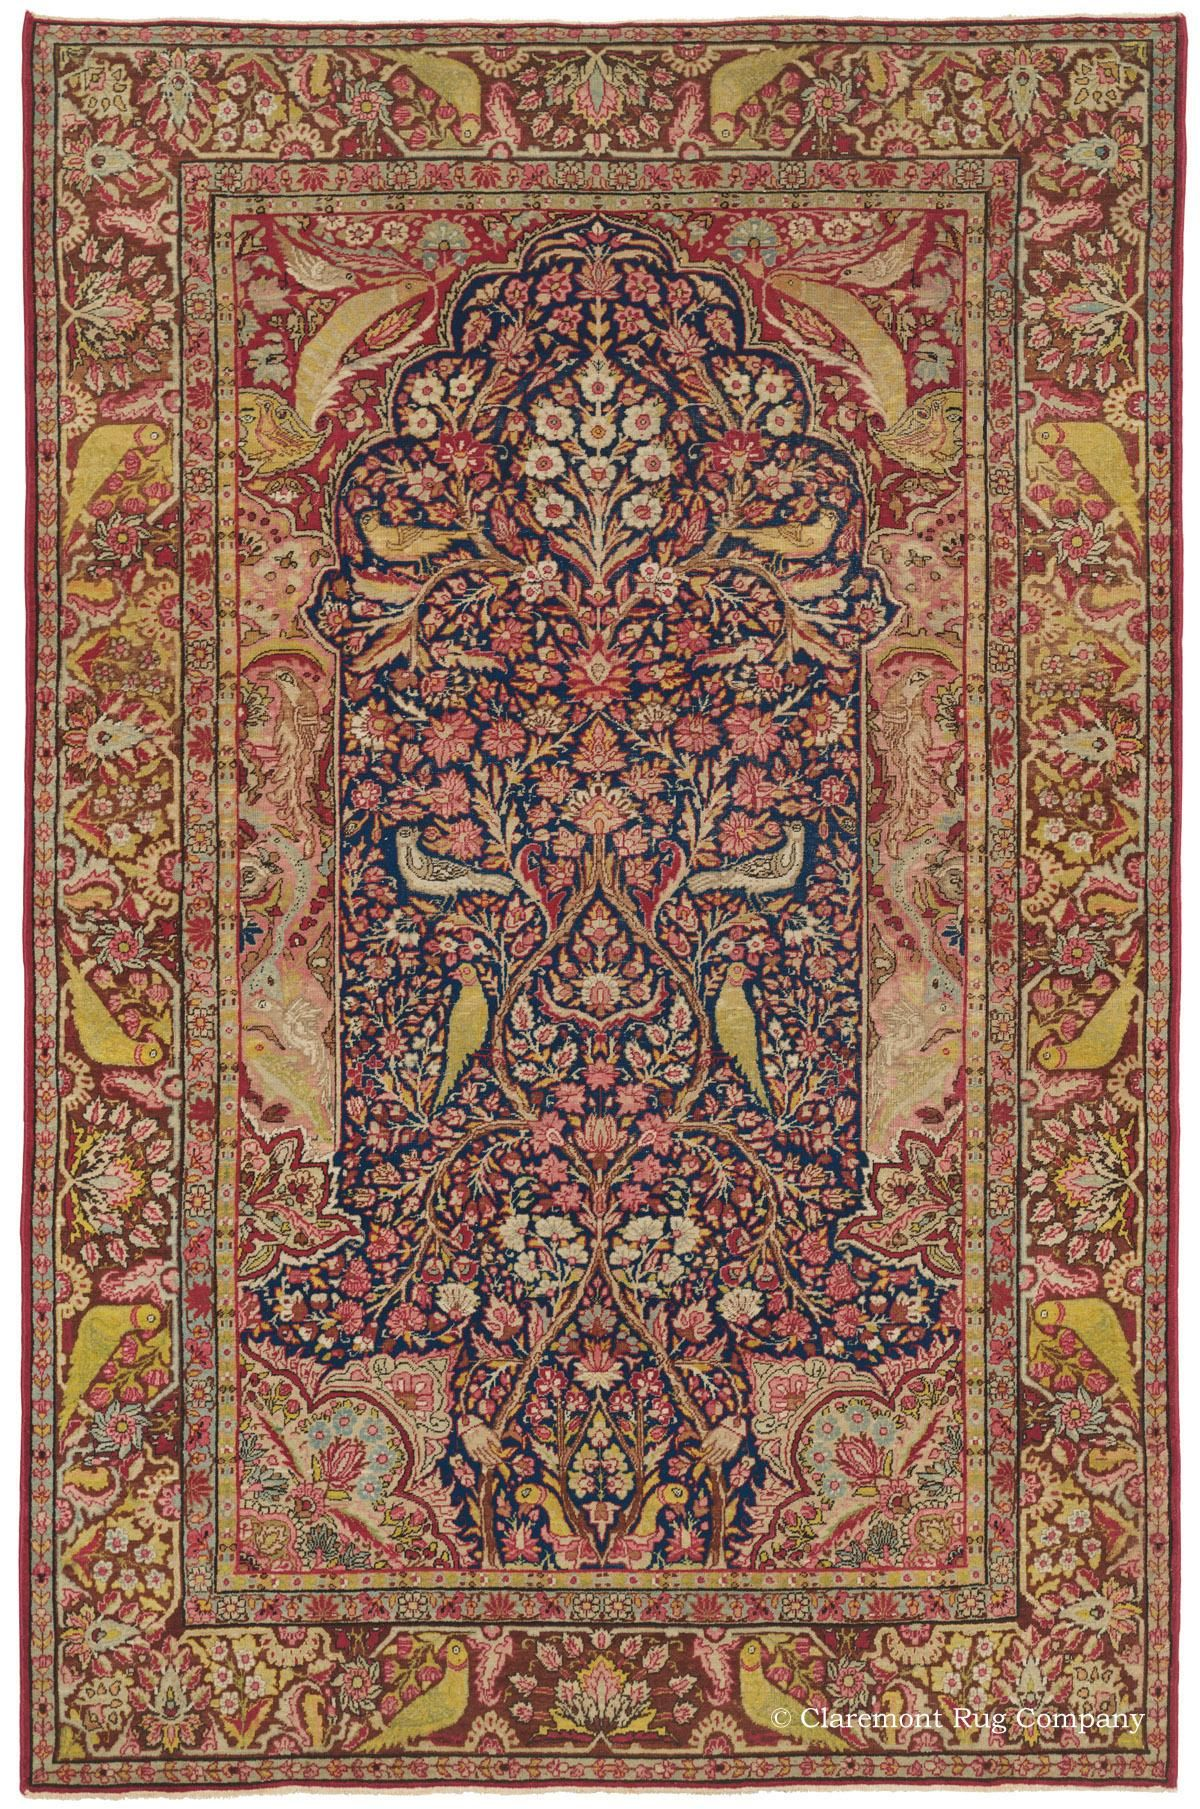 Kermanshah \'Garden of Paradise,\' 4ft 5in x 6ft 9in, Circa 1875. The ...